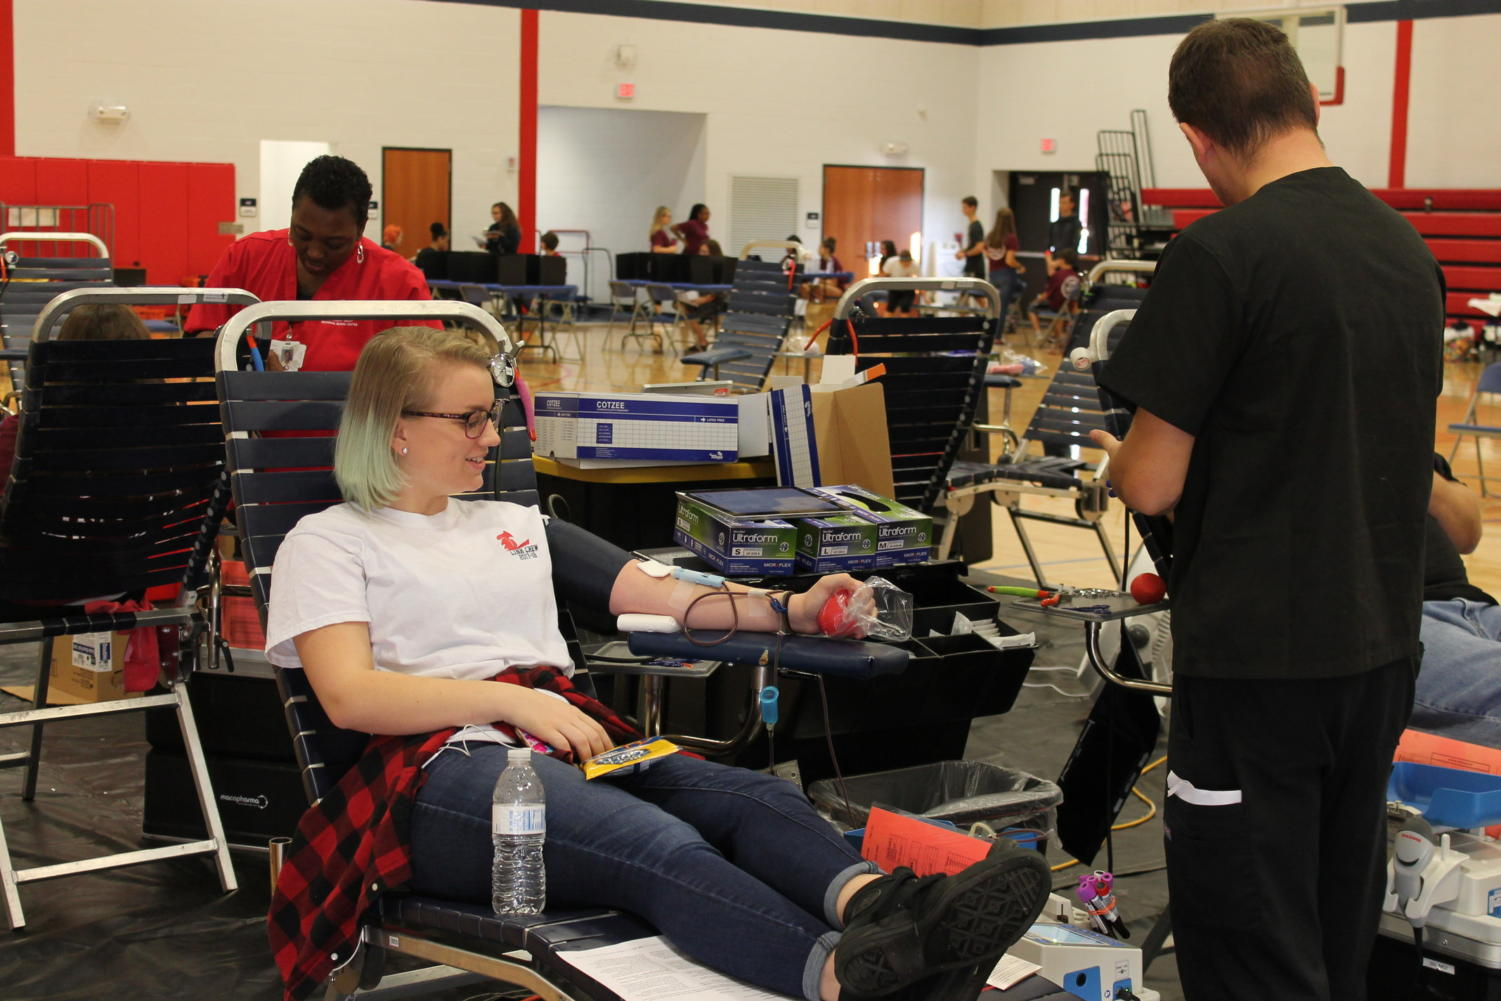 On November 3rd, 80 people were able to donate blood, each person saving up to three lives.